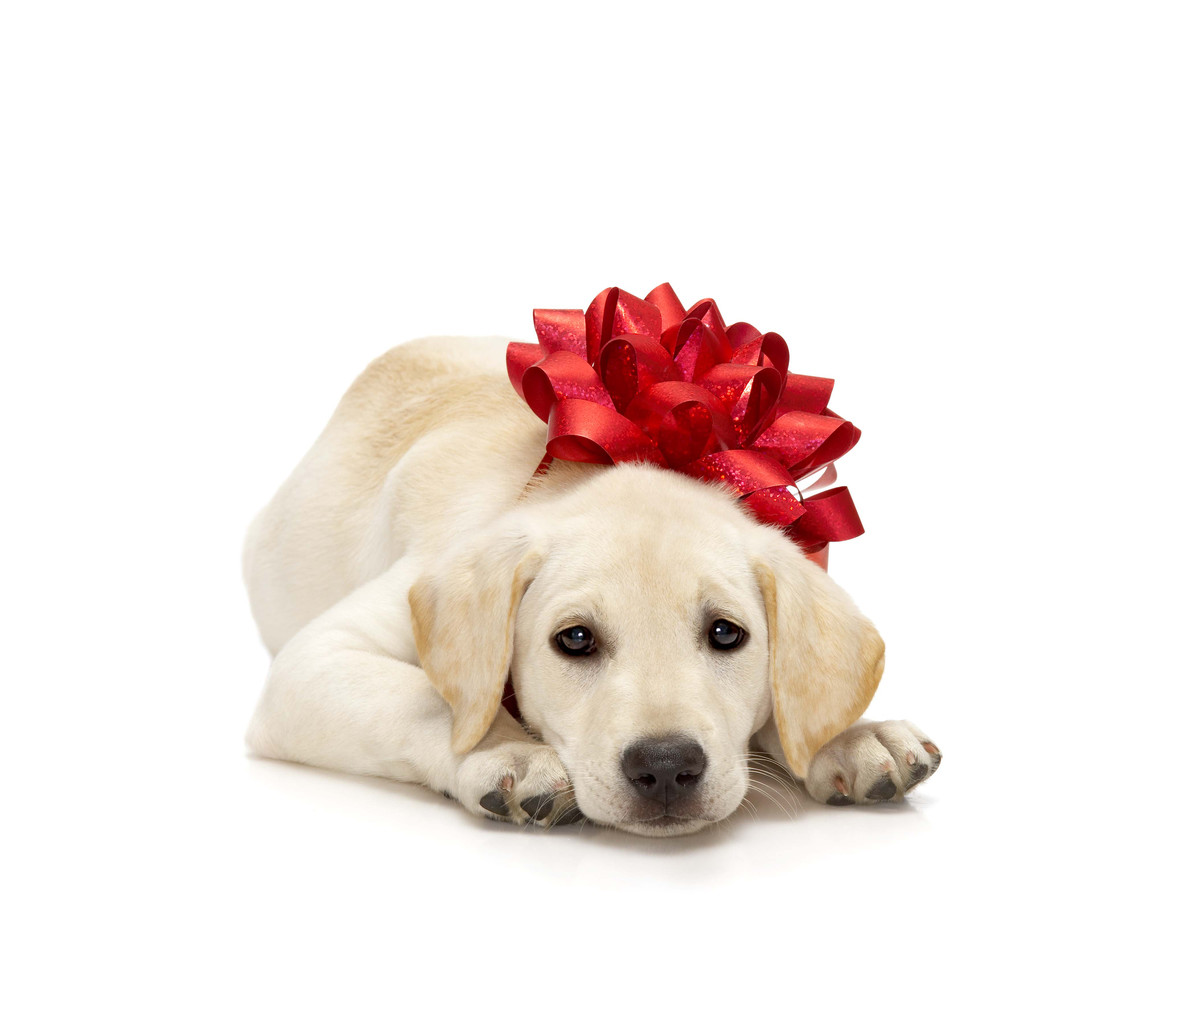 GUIDE Dogs Victoria is putting the call out for new puppy raisers from